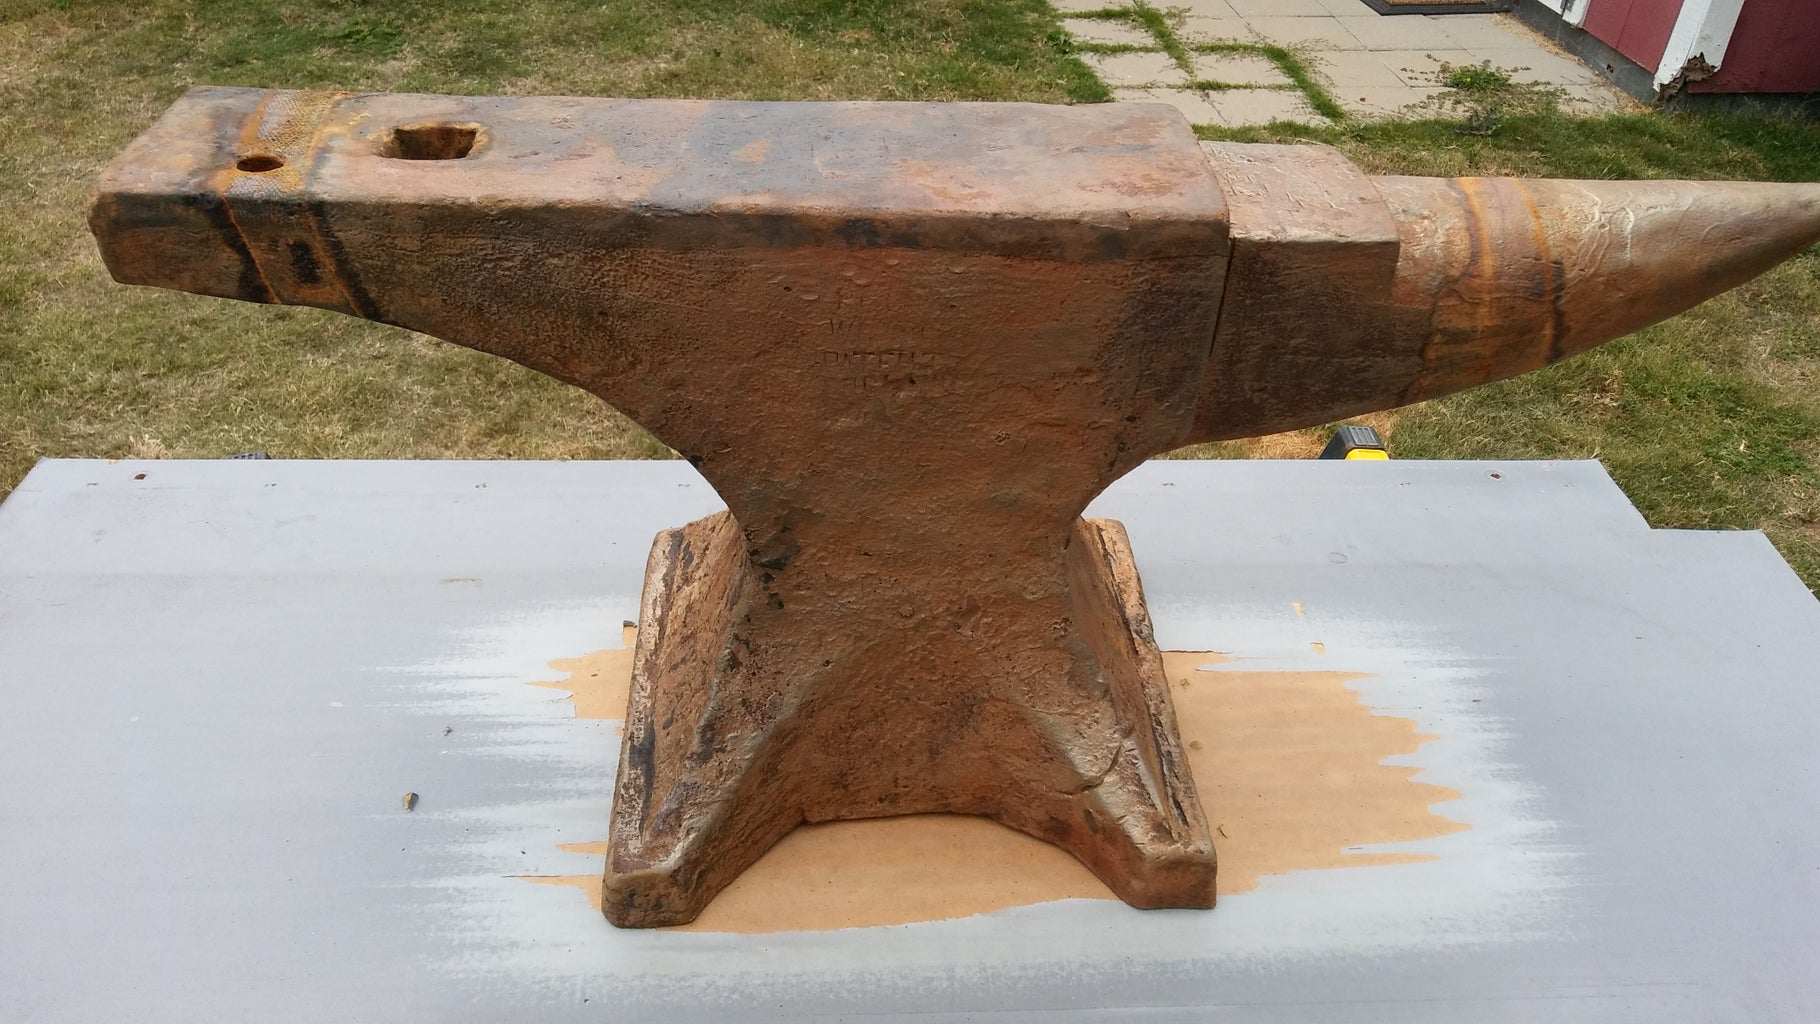 A Very Fine Surface Rust May Develop.  Clean It Off With an Angle Grinder and Wire Wheel.